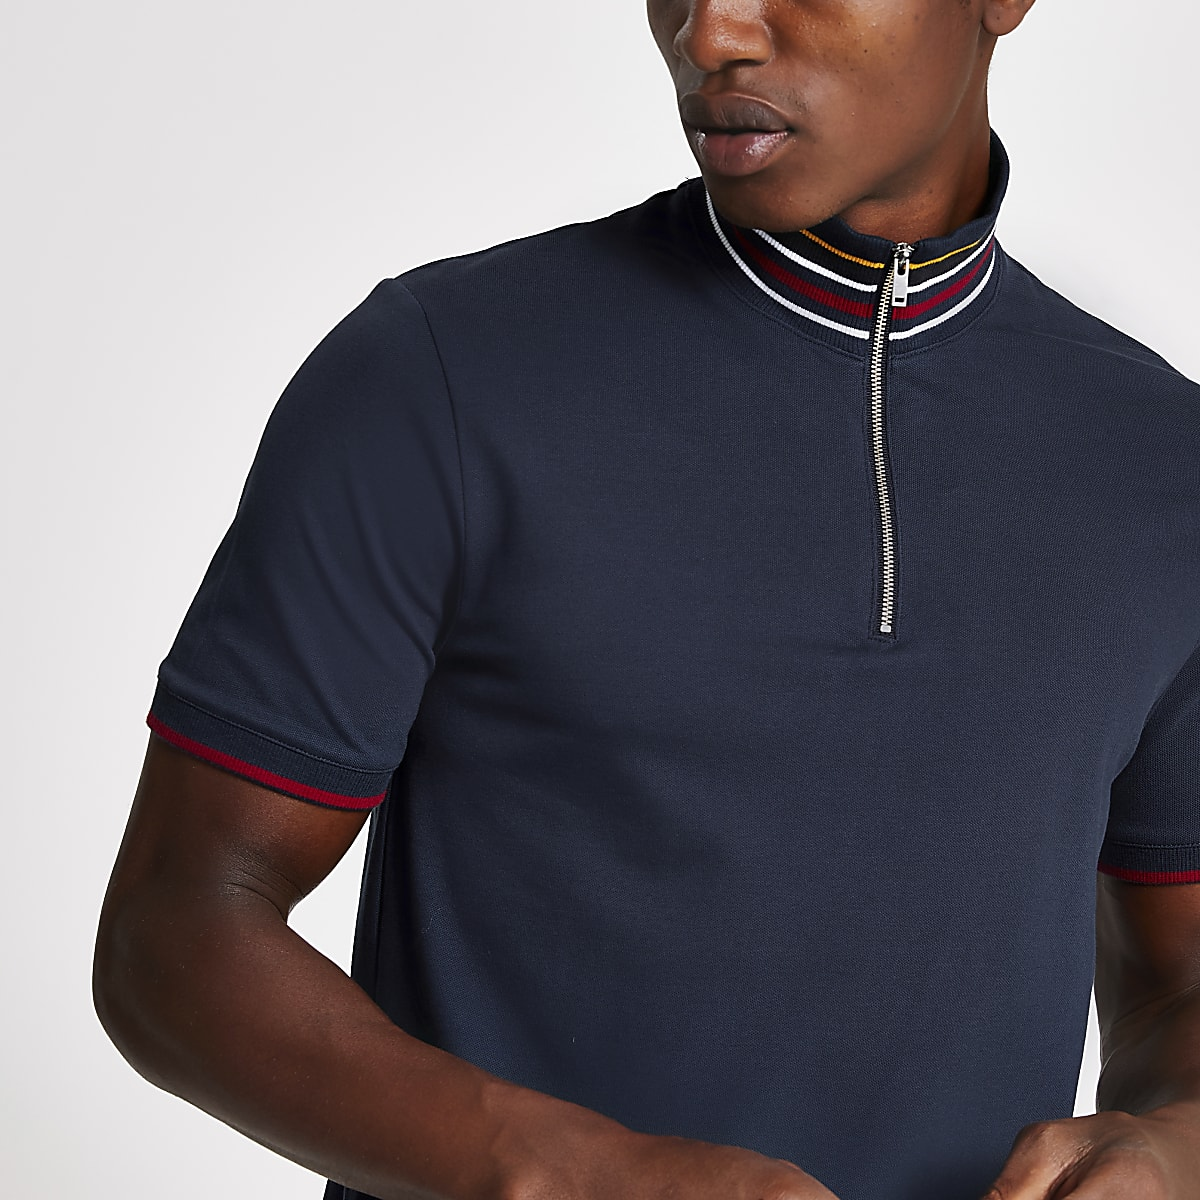 Selected Homme navy zip polo shirt